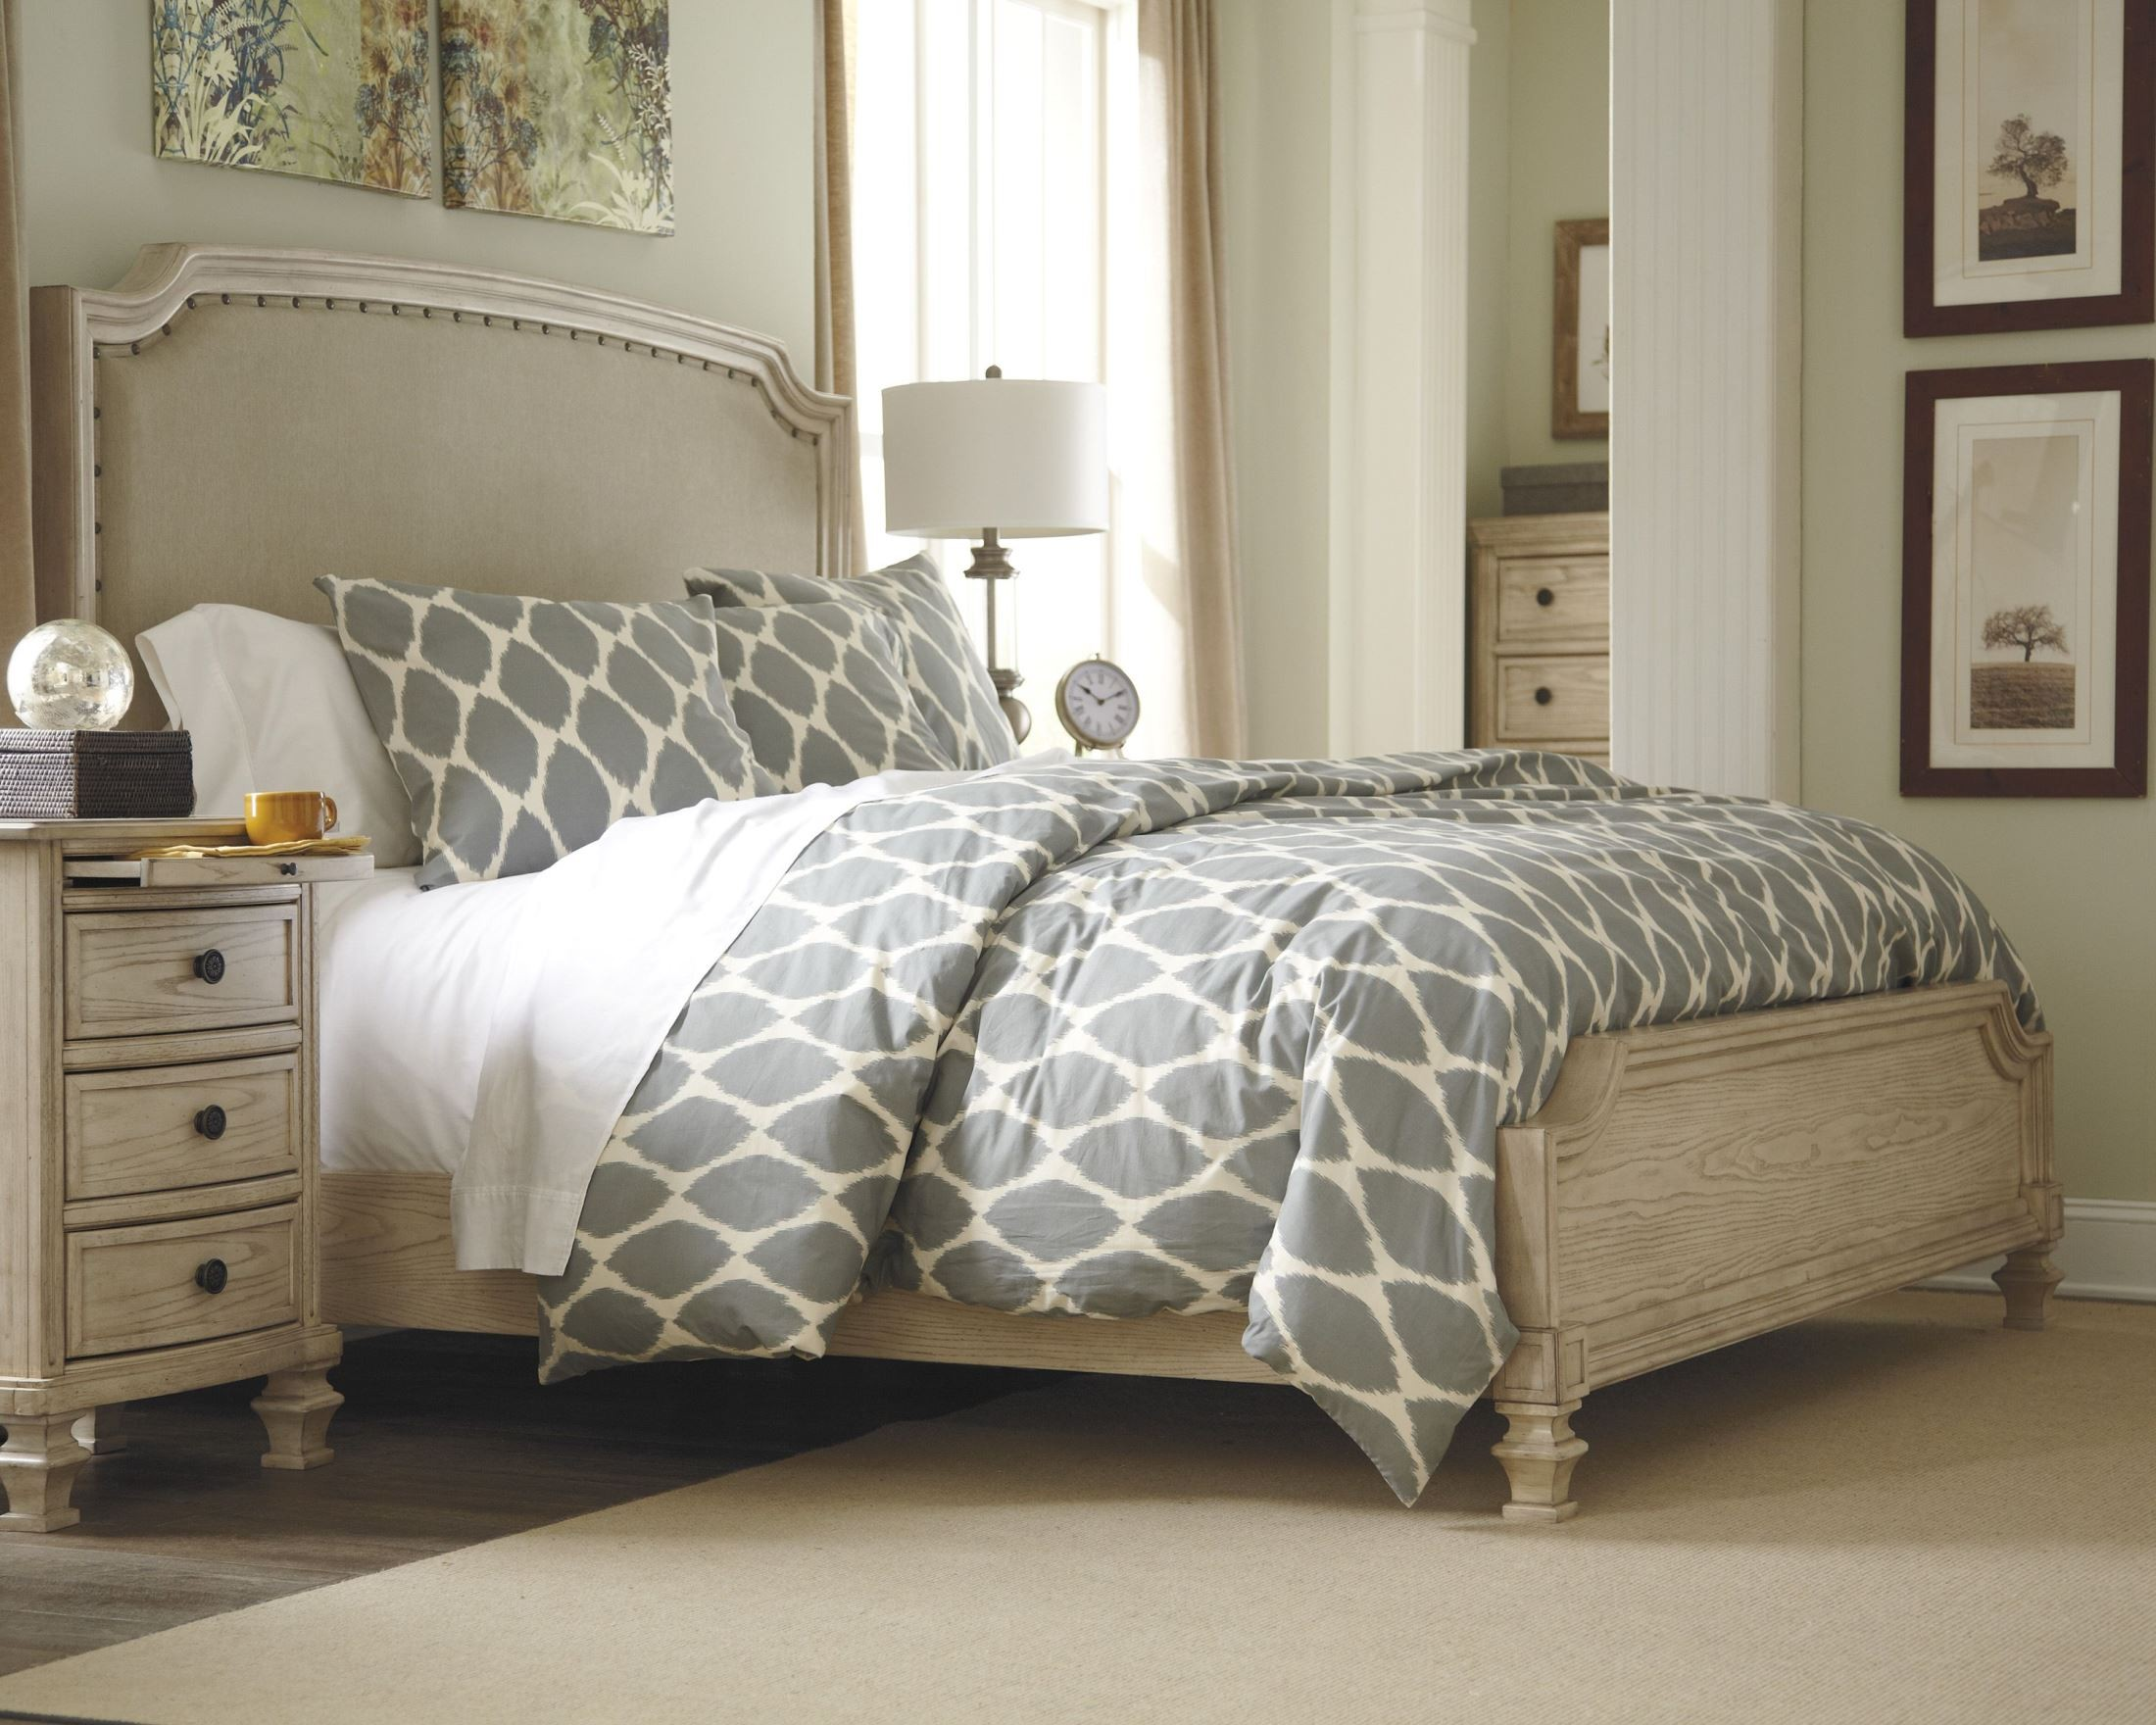 Demarlos queen upholstered panel bed from ashley b693 77 74 96 coleman furniture for Demarlos upholstered panel bedroom set